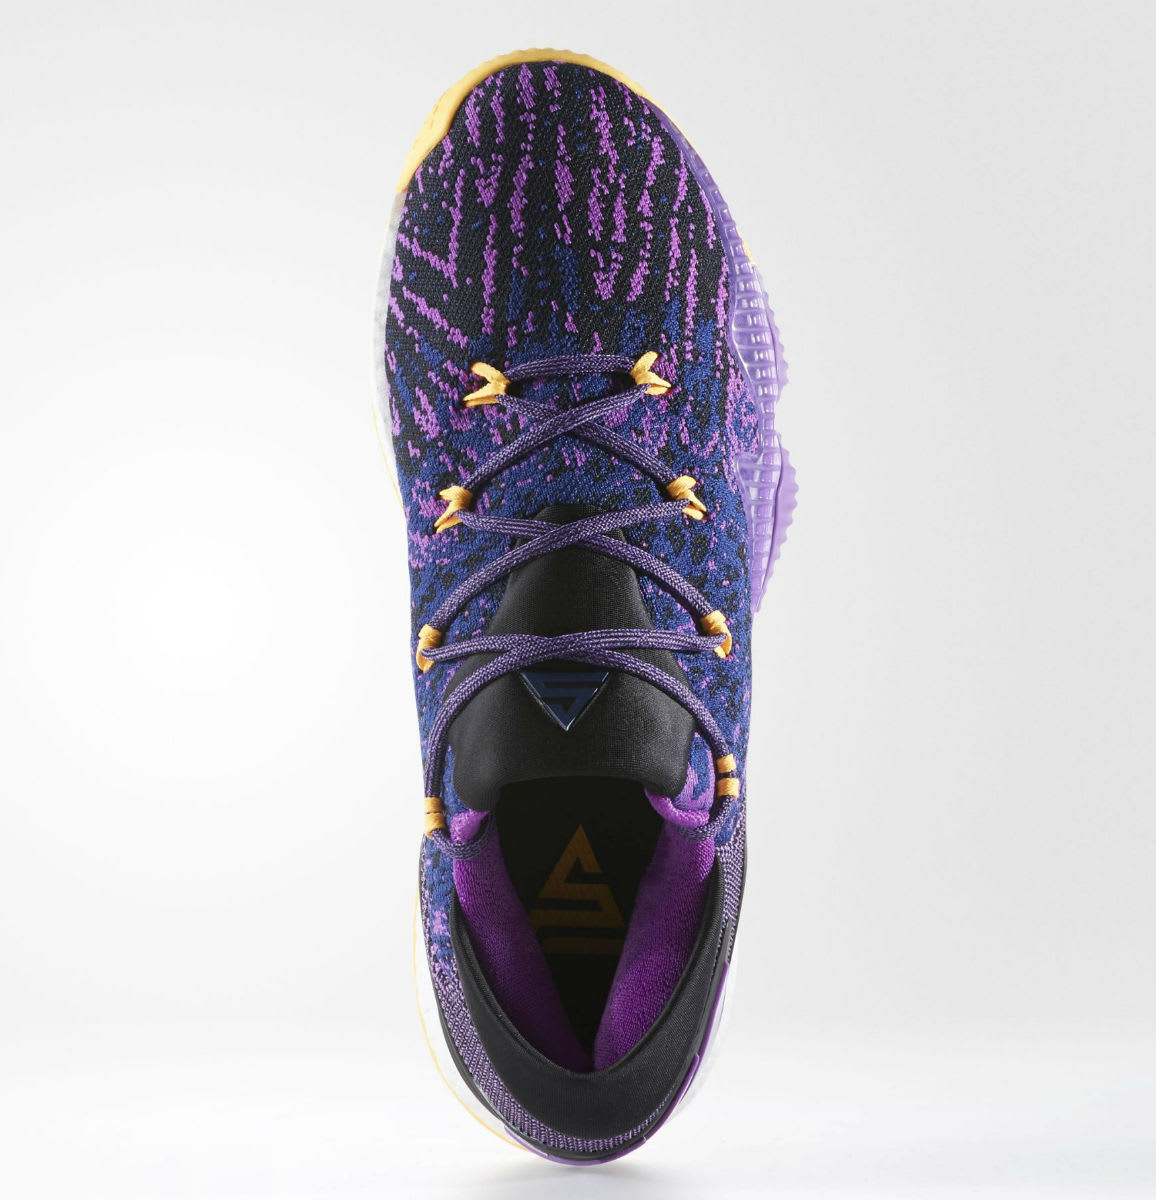 Adidas crazylight boost low 2016 bred black red mens basketball shoes - Adidas Crazylight Boost Swaggy P Lakers Top Bb8175